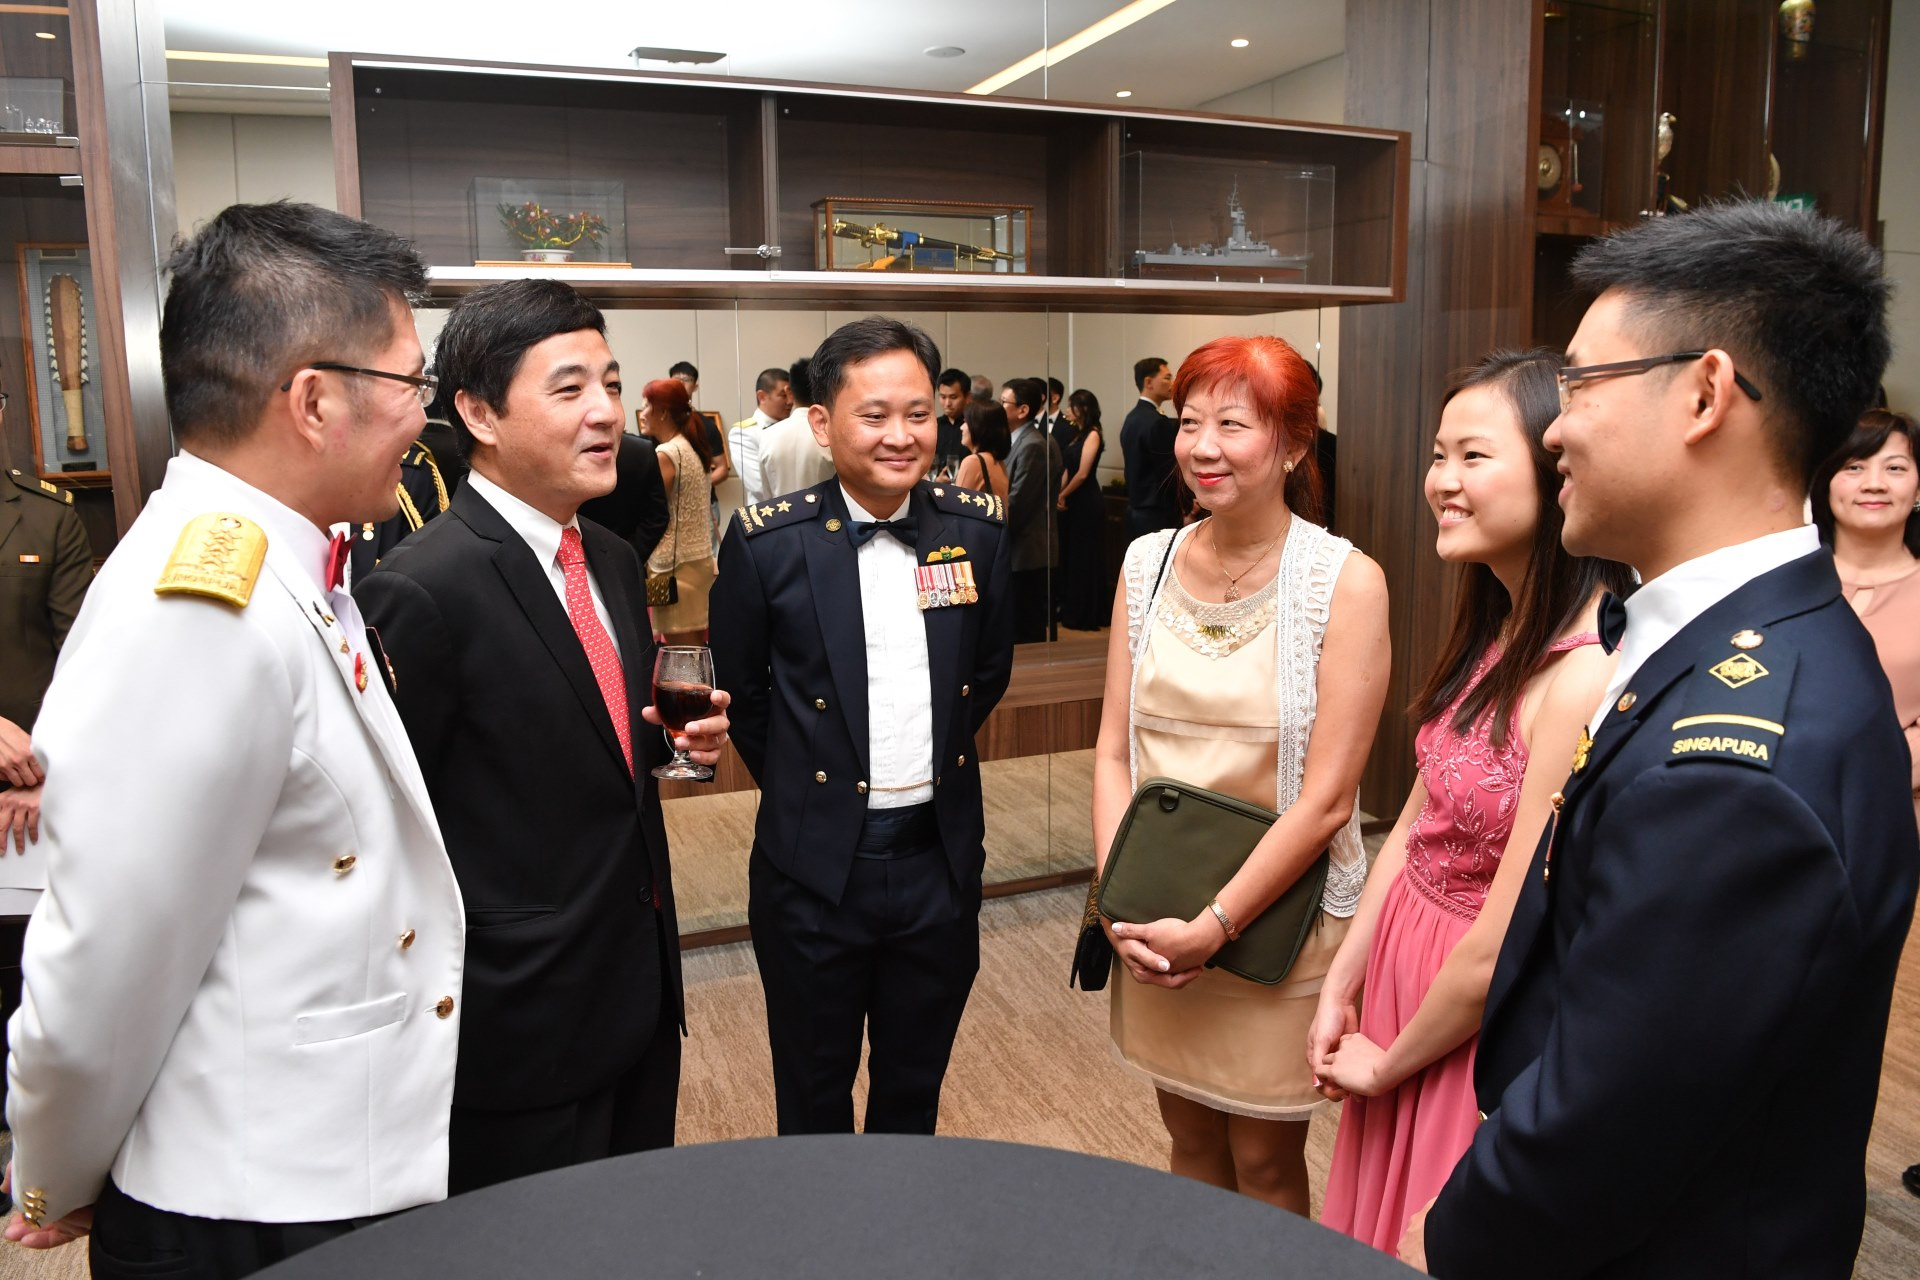 Mr Heng with Chief of Defence Force Lieutenant-General Melvyn Ong and Chief of Air Force Major-General Mervyn Tan interacting with ME4 Ng Zhi Long Benjamin and his family prior to the ceremony at Temasek Club this evening.